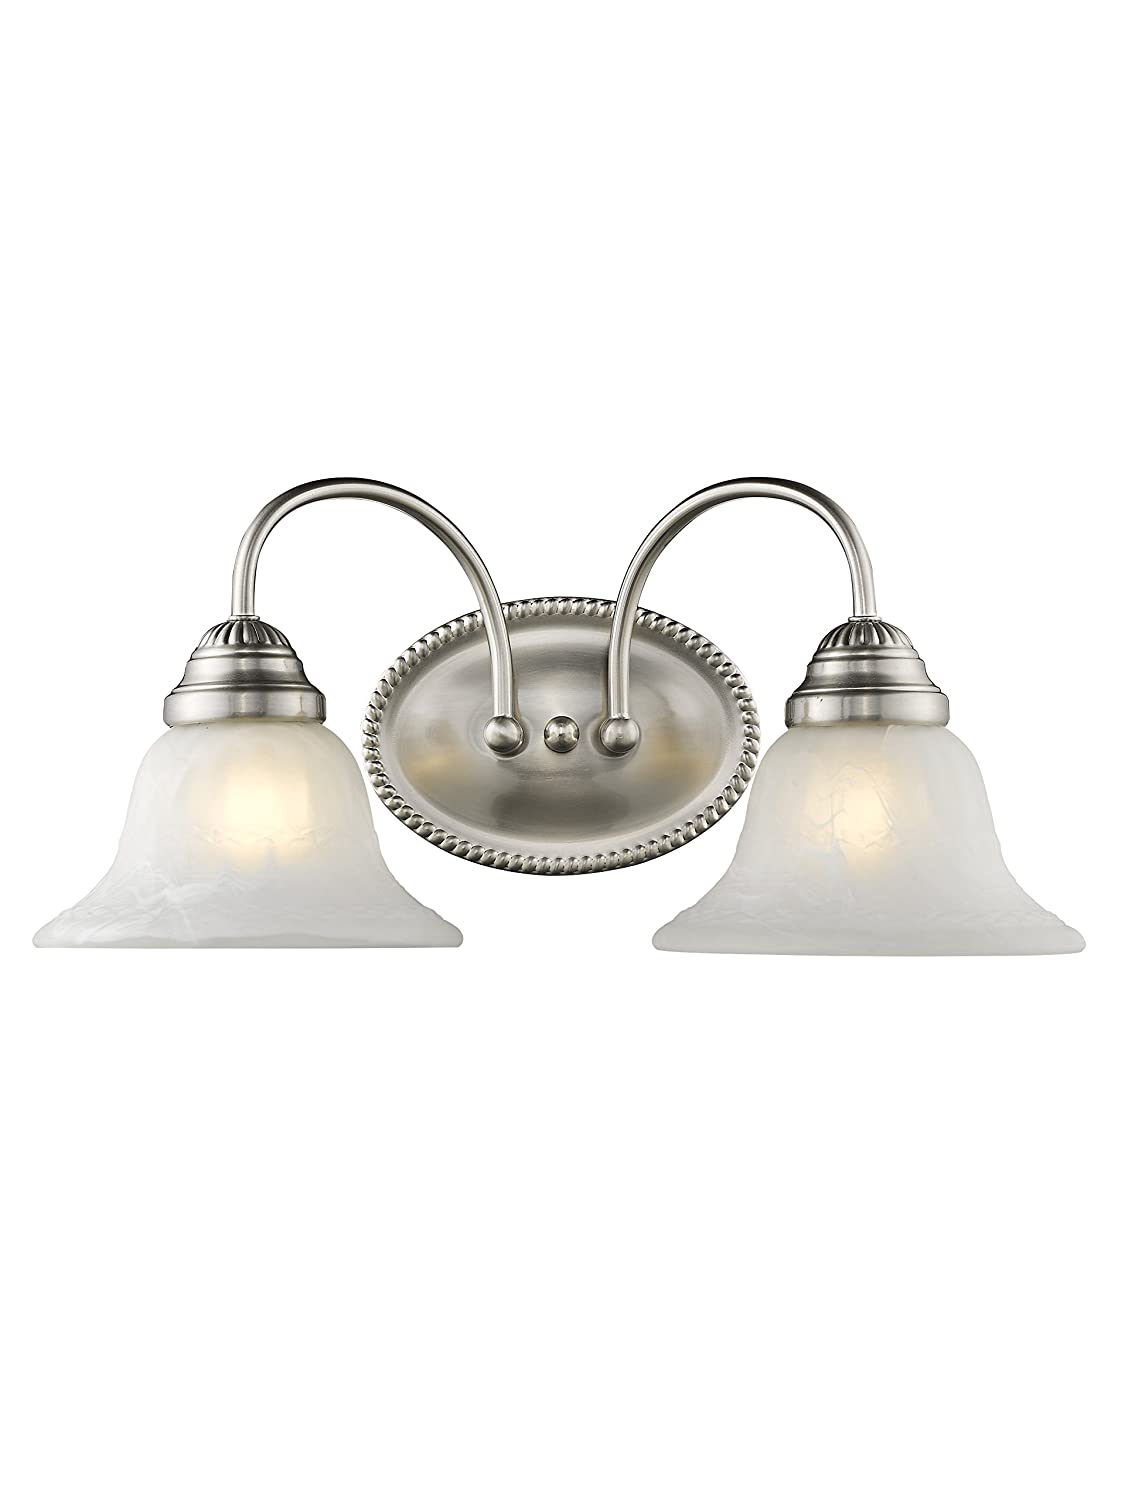 Livex Lighting 1532-91 Edgemont 2 Light Vanity Brushed Nickel with White Alabaster Glass